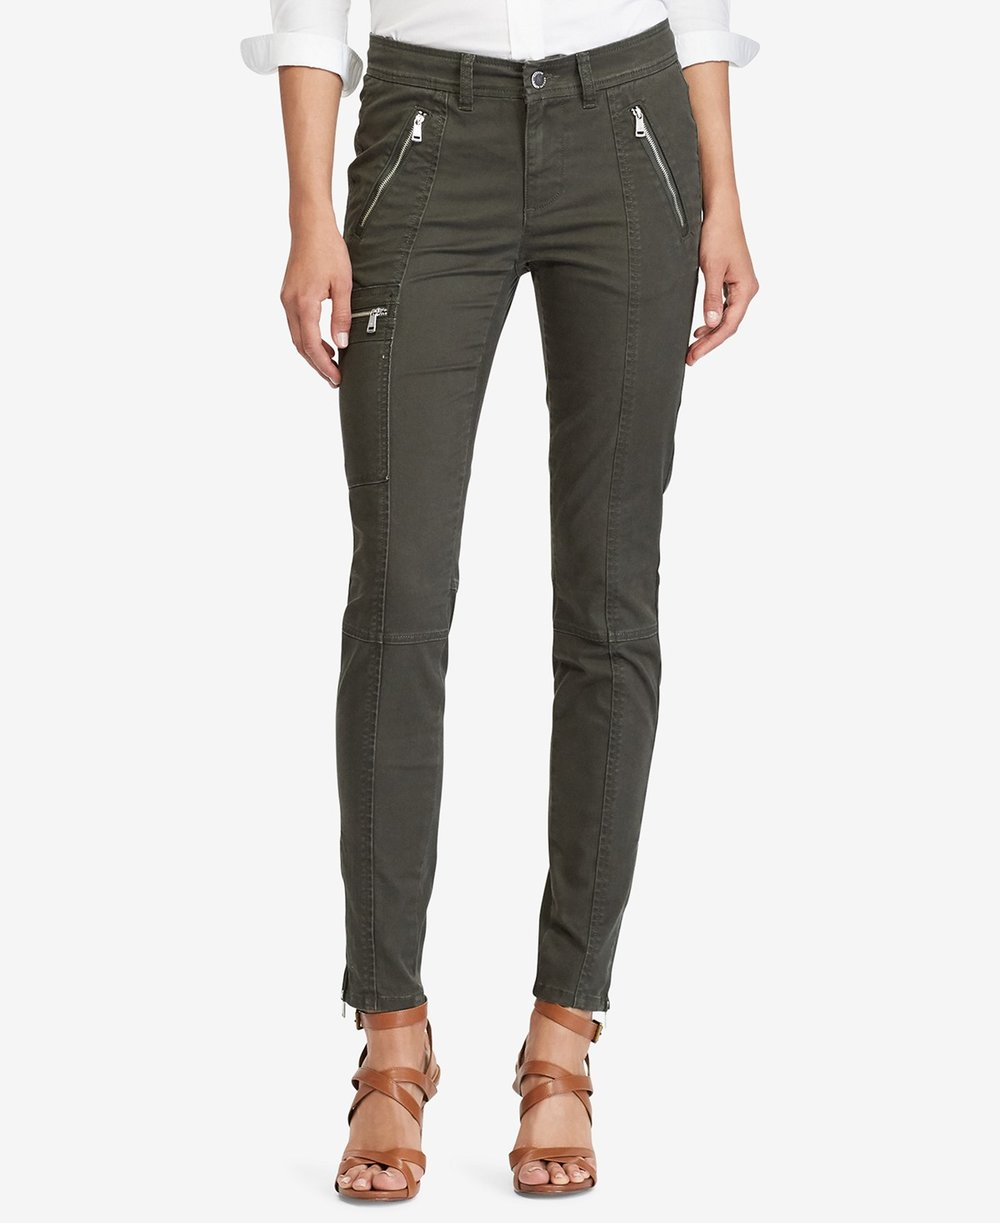 Lauren Ralph Lauren  Petite Cargo Pants. Macy's. Was: $99. Now: $69.